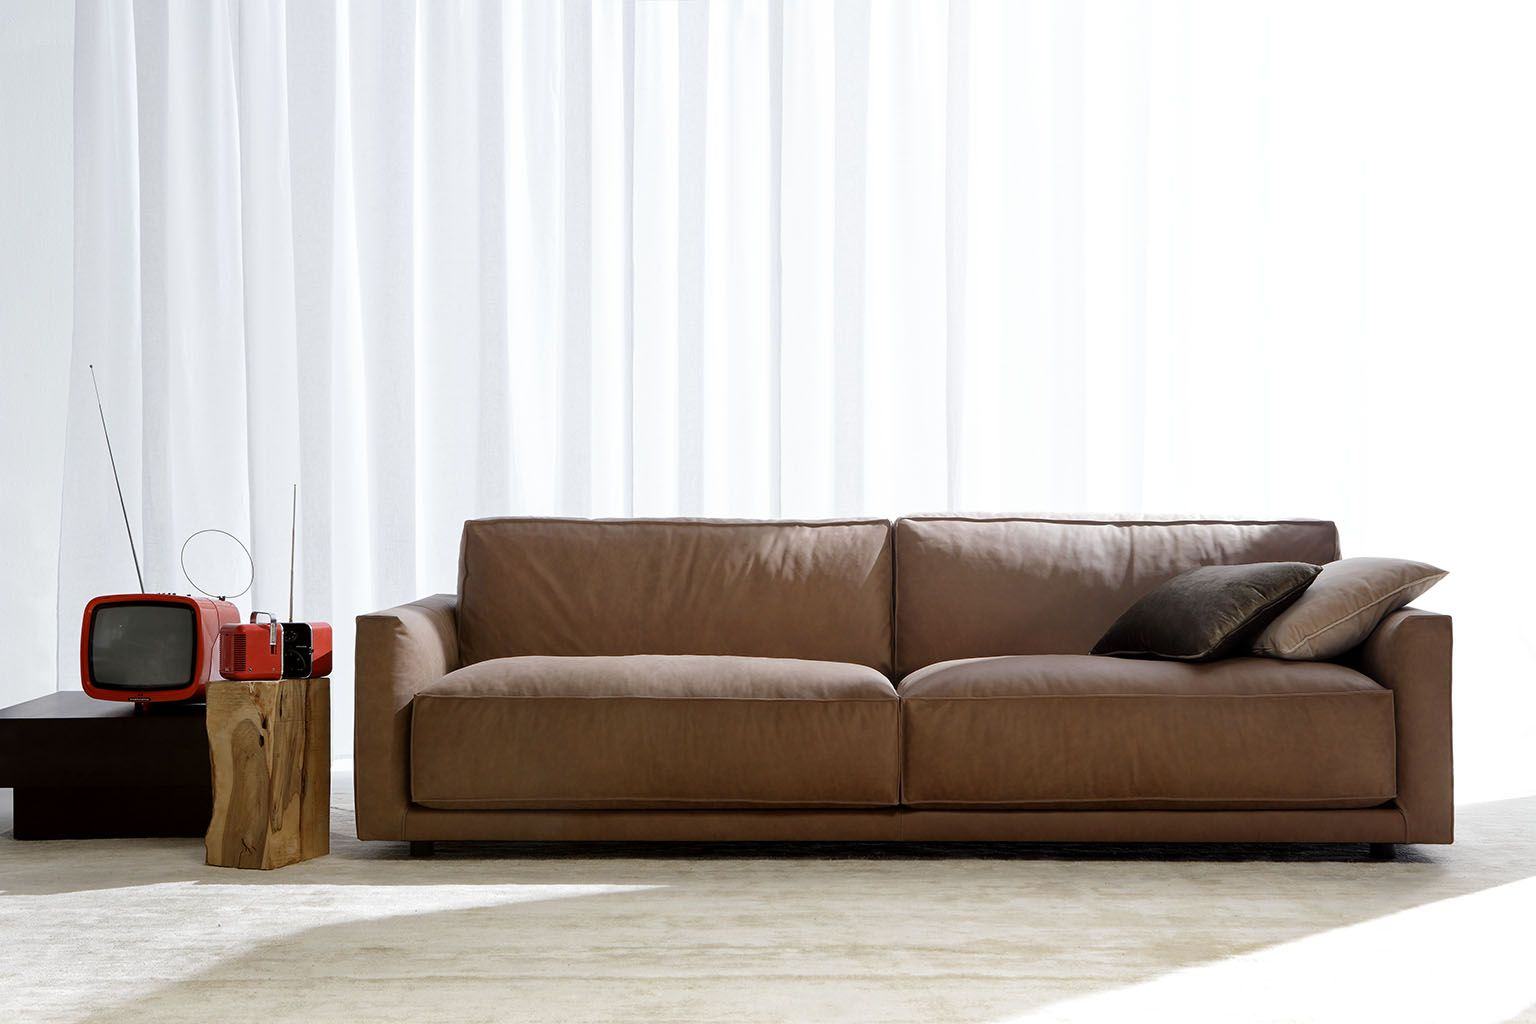 Ribot sofa by Berto. Modern leather sofa made in Italy. | Sofa ...